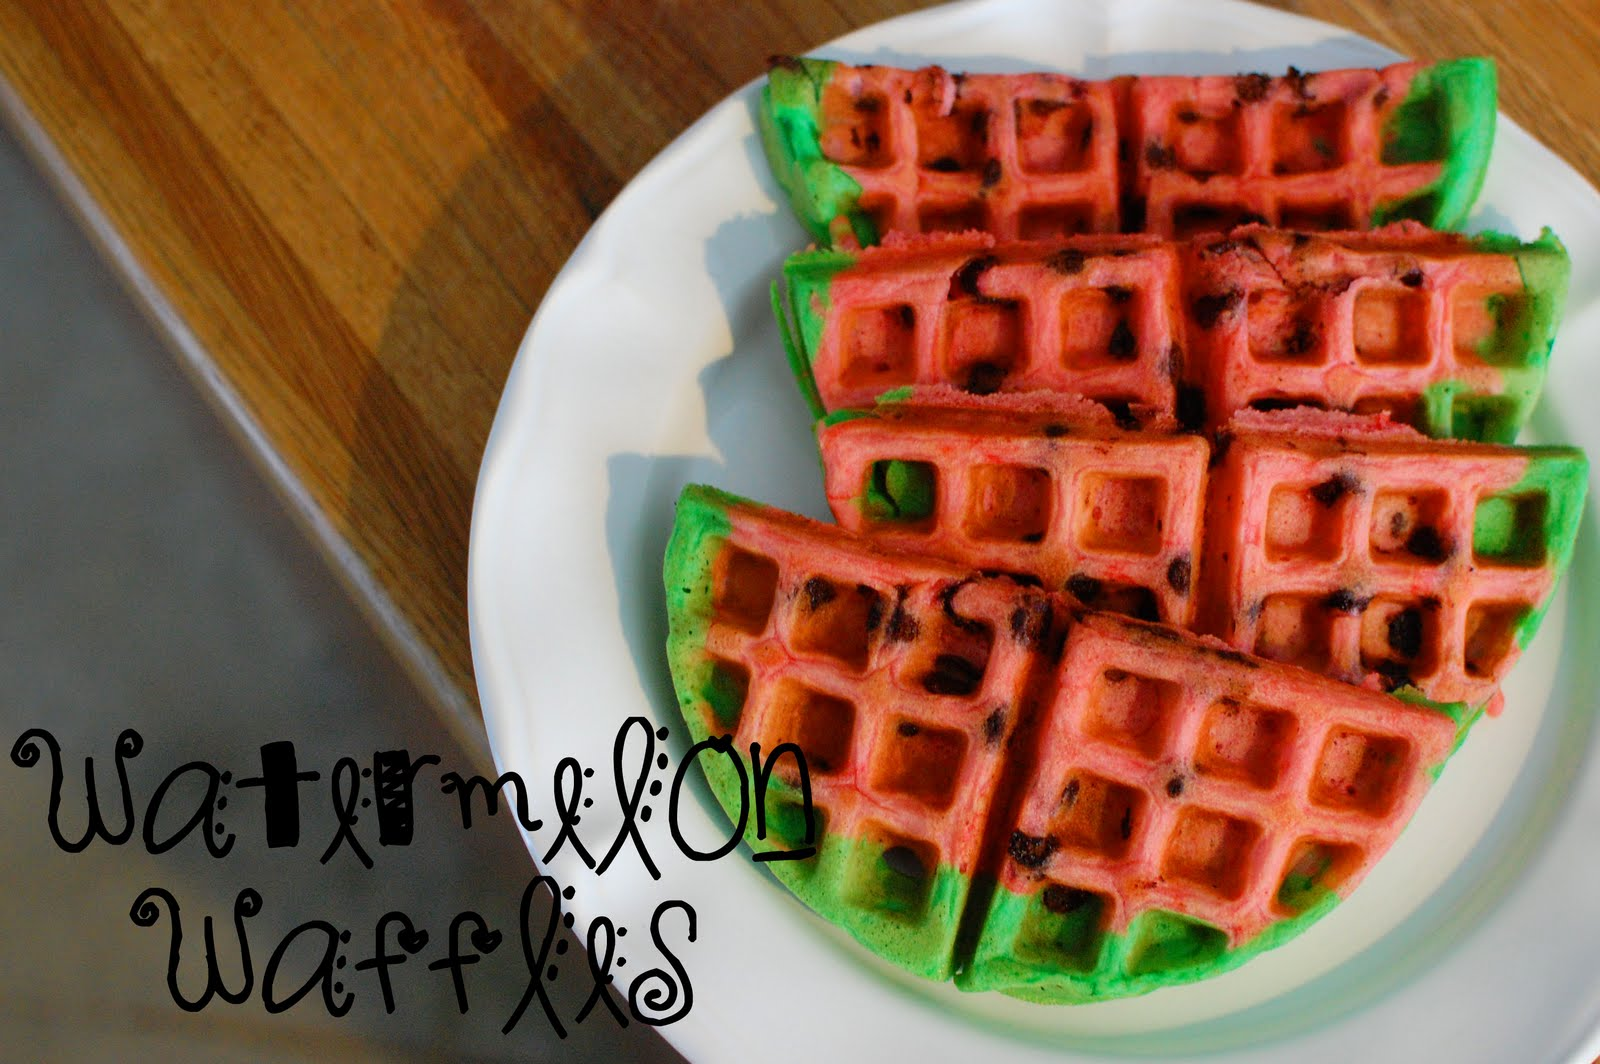 Marci coombs 2 cute summer food ideas for Summer food party ideas